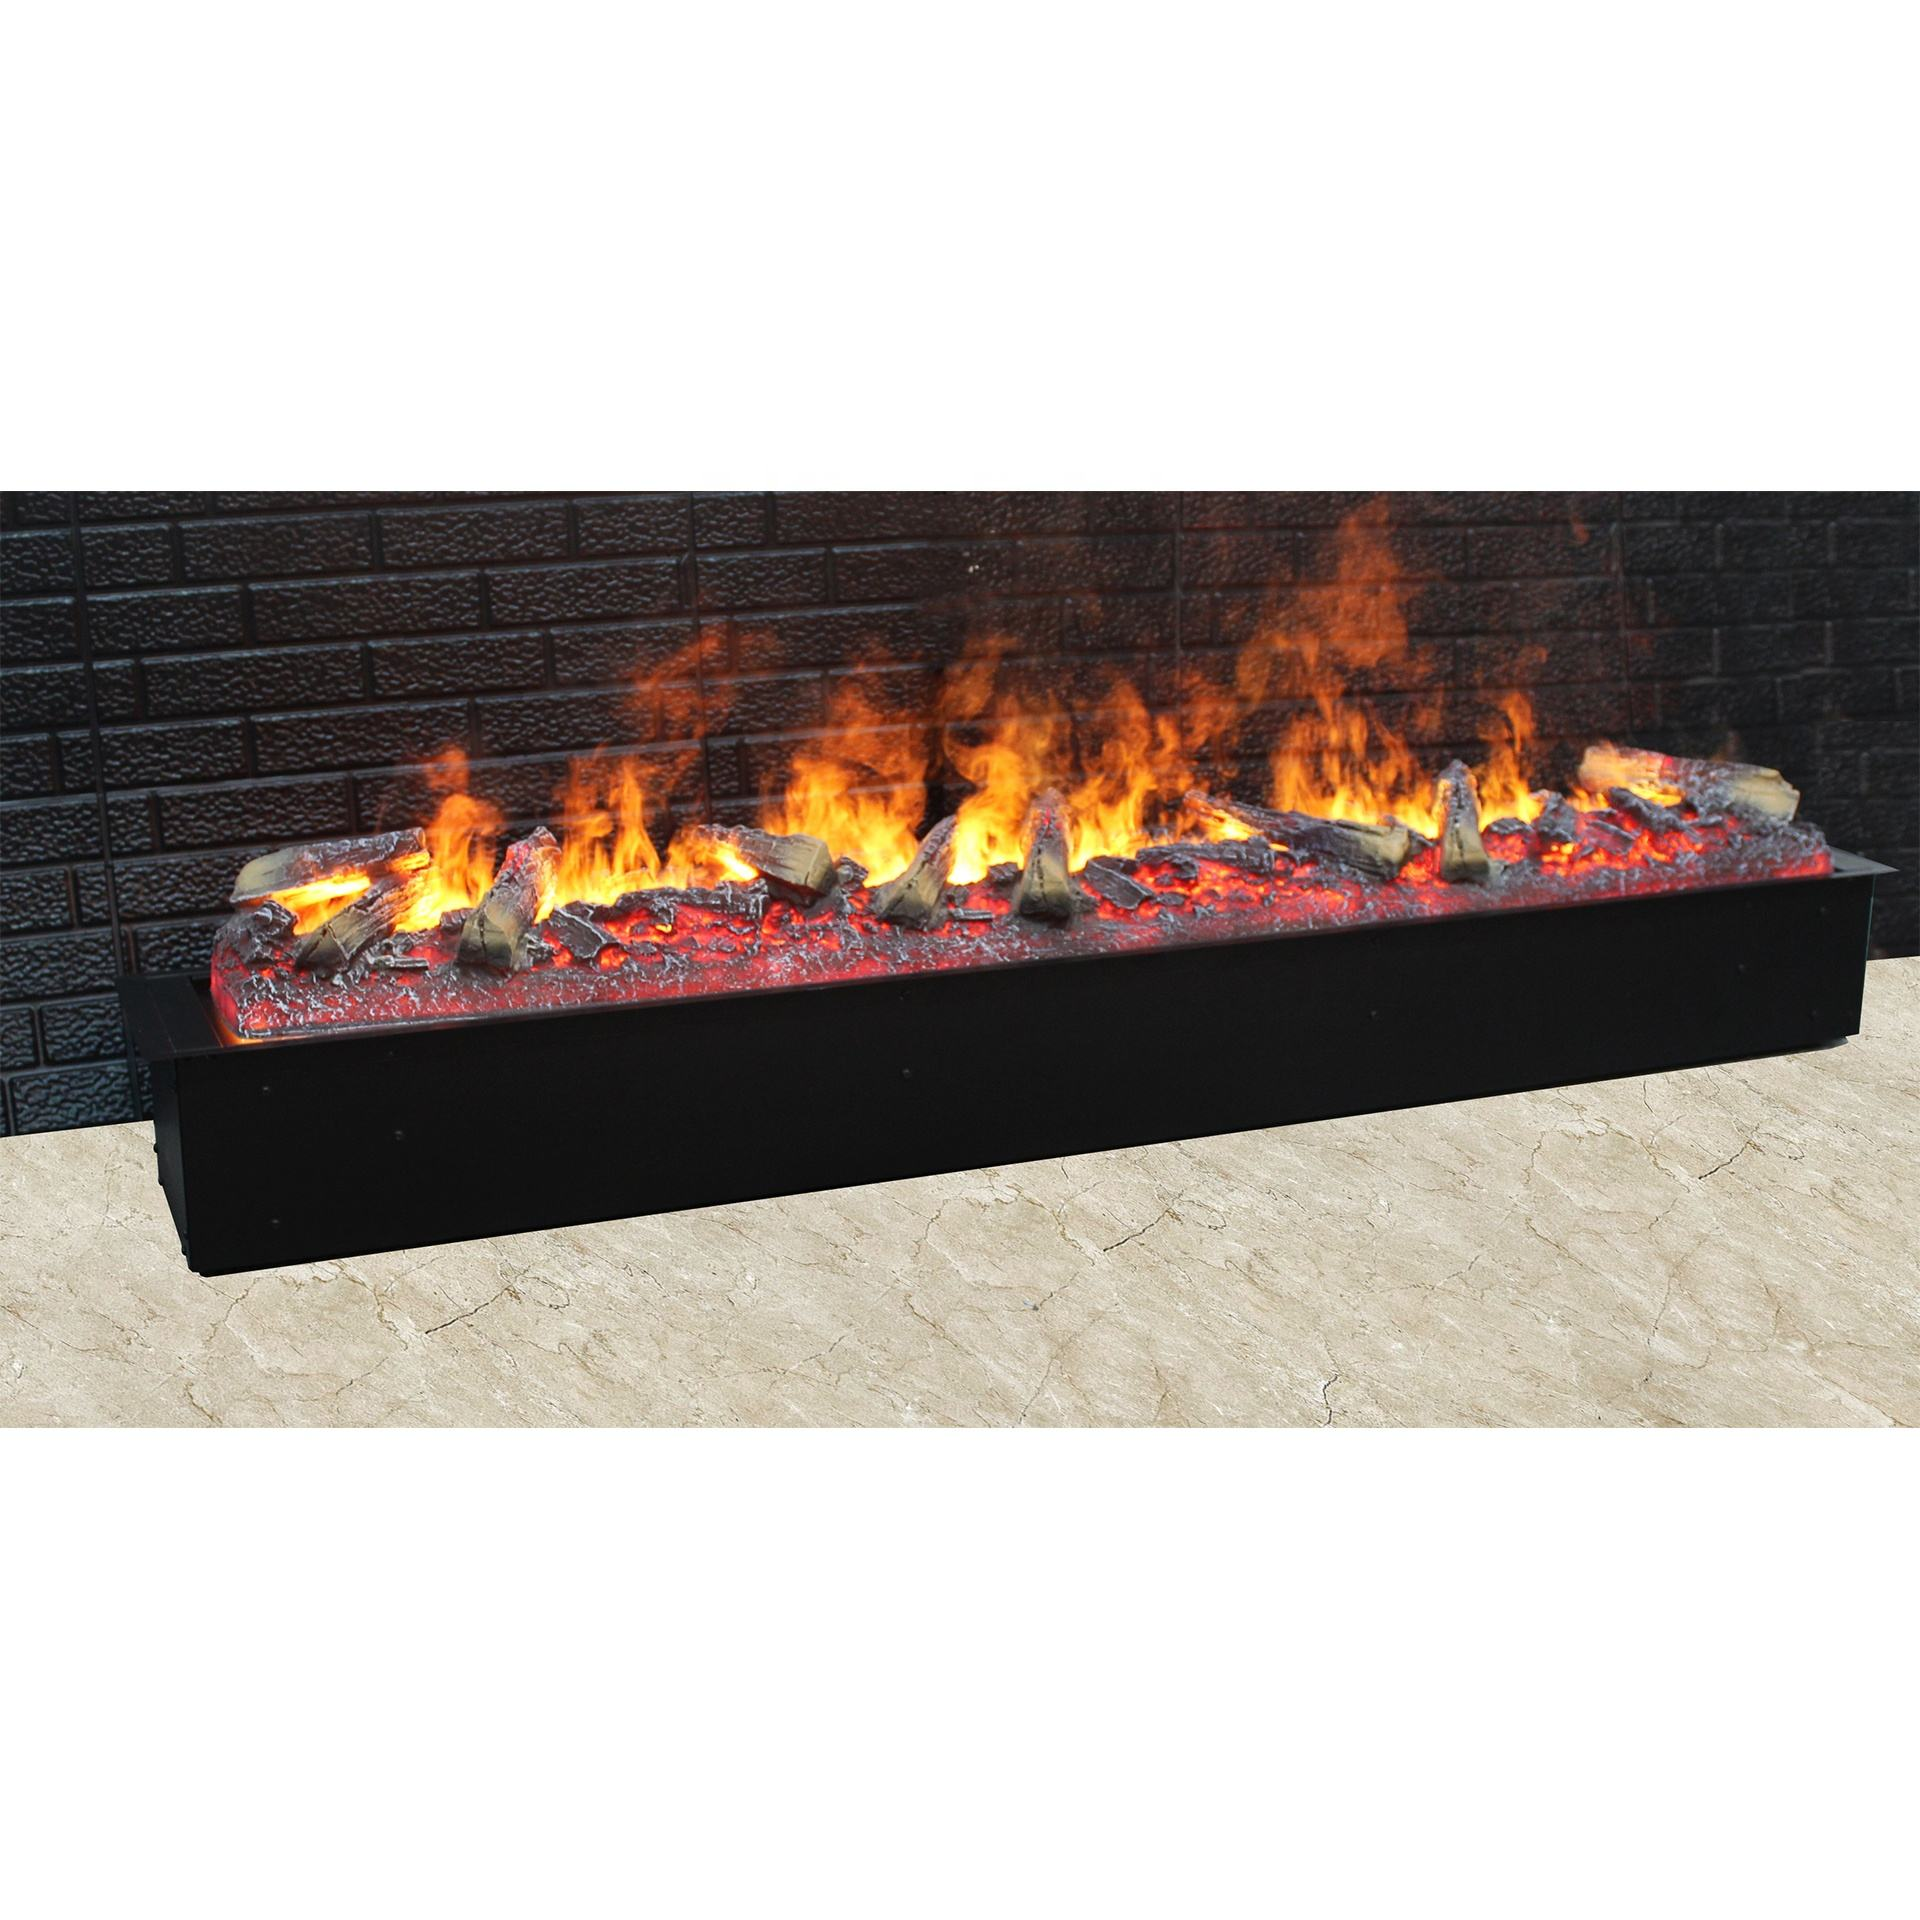 Atomization Fire Steam Vapor Fireplace Cassette 1500mm Log Set Design Ultrasonic Technology